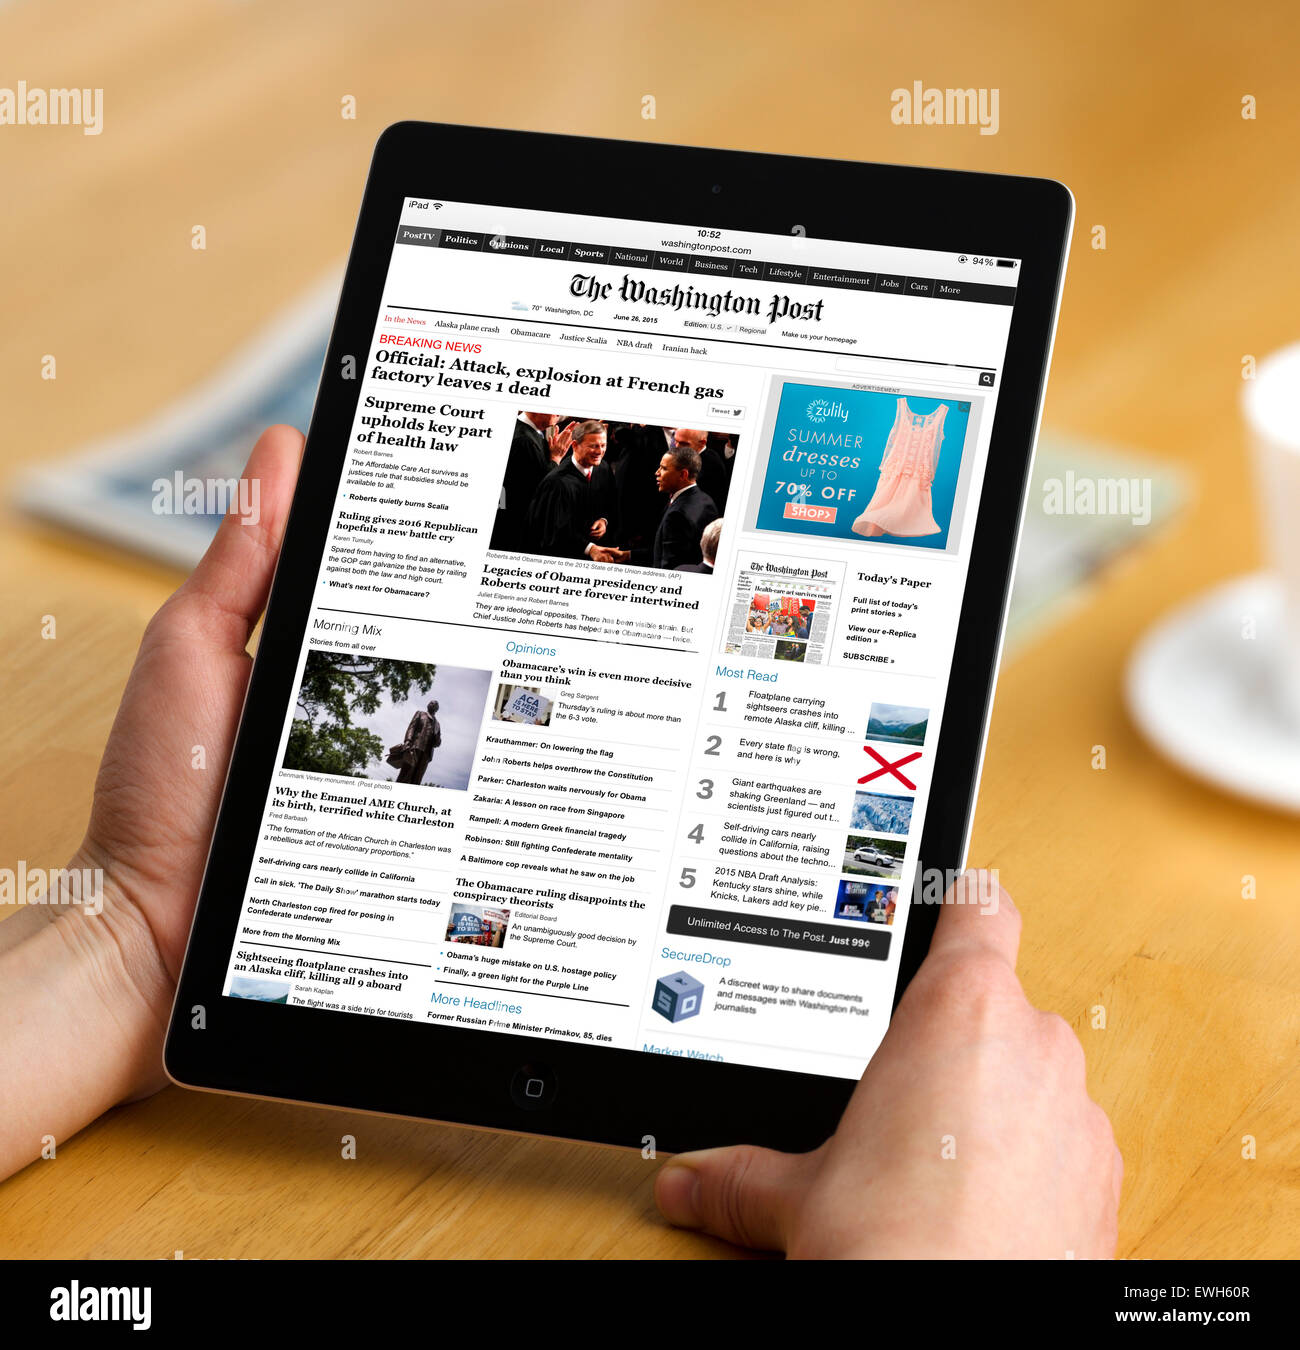 La lectura de la edición de internet de The Washington Post, periódico online en un Apple iPad Air Imagen De Stock